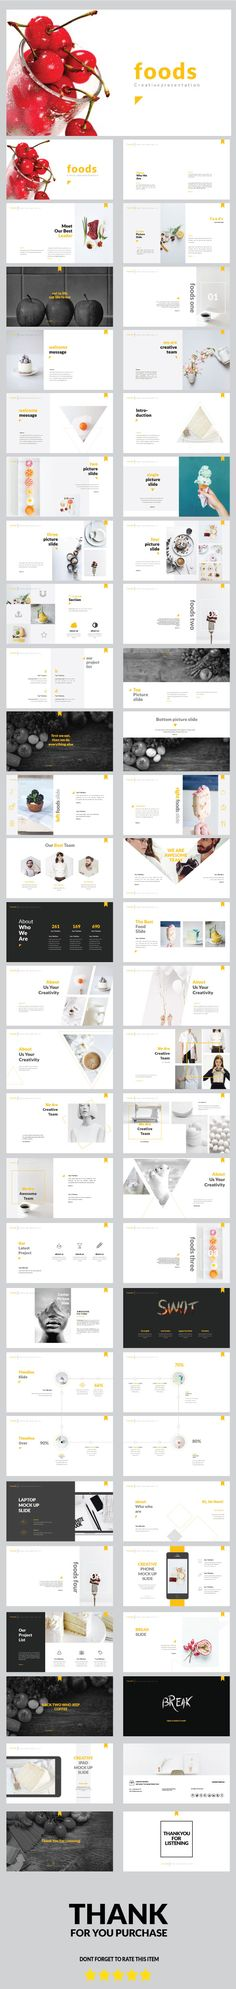 Orange clean trend business keynote template download here http orange clean trend business keynote template download here httpgraphicriveritemorange clean trend business keynote te toneelgroepblik Images